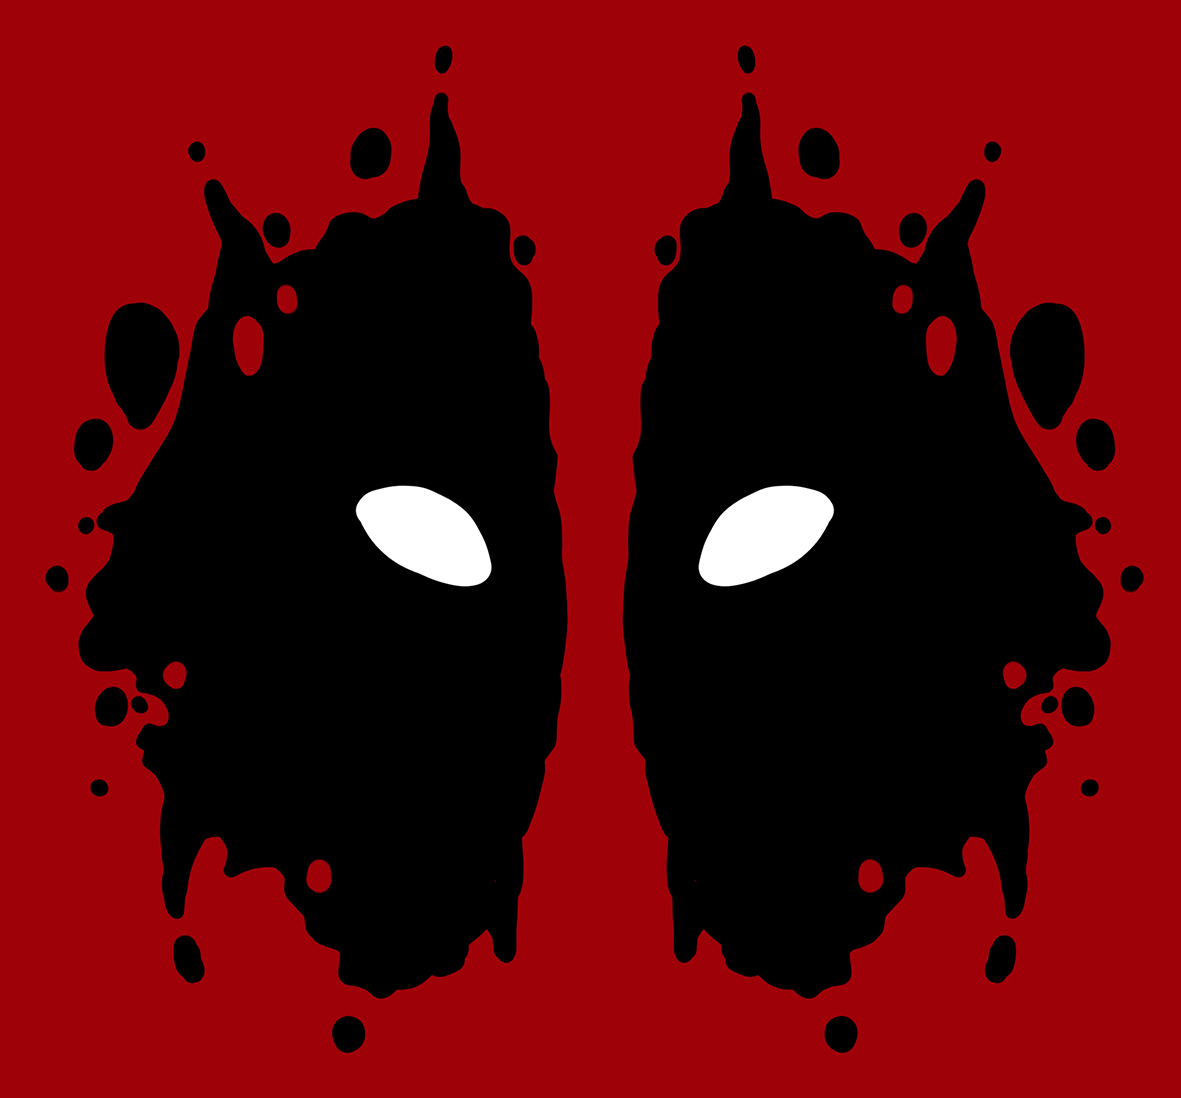 Deadpool Rorschach Test